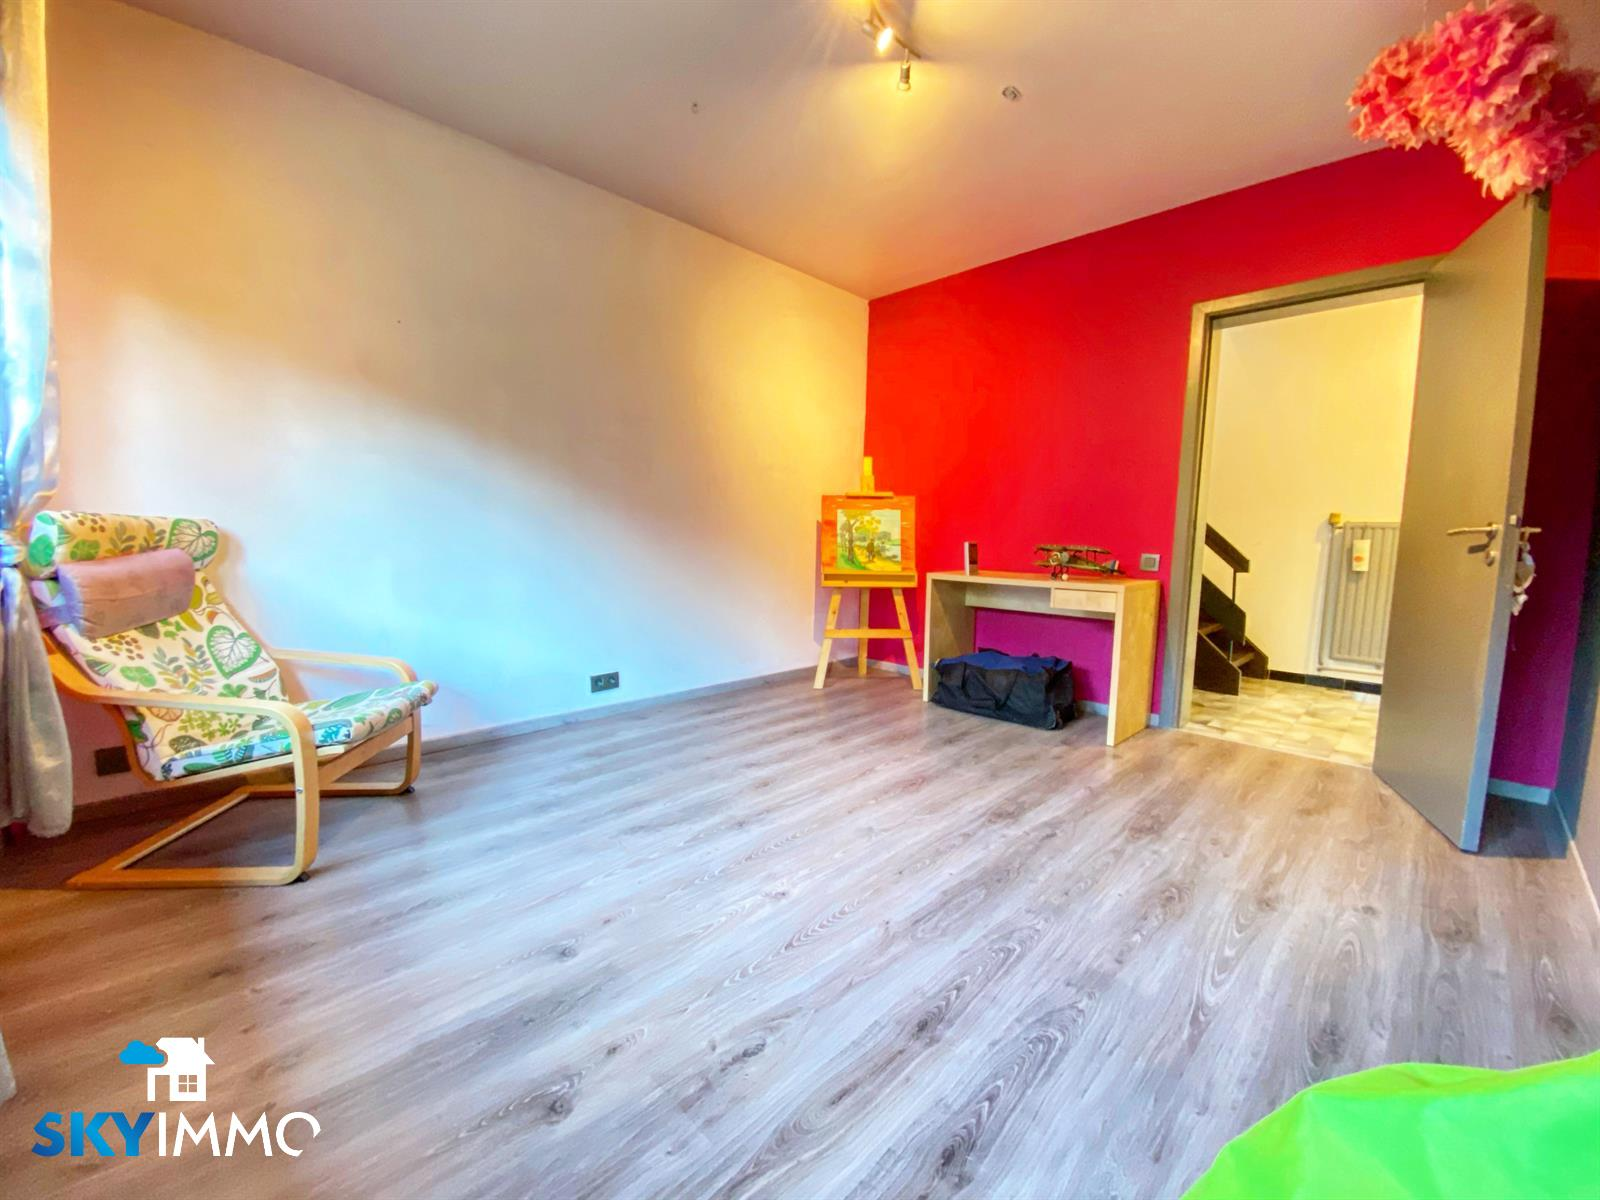 Bungalow - Flemalle - #4363206-25